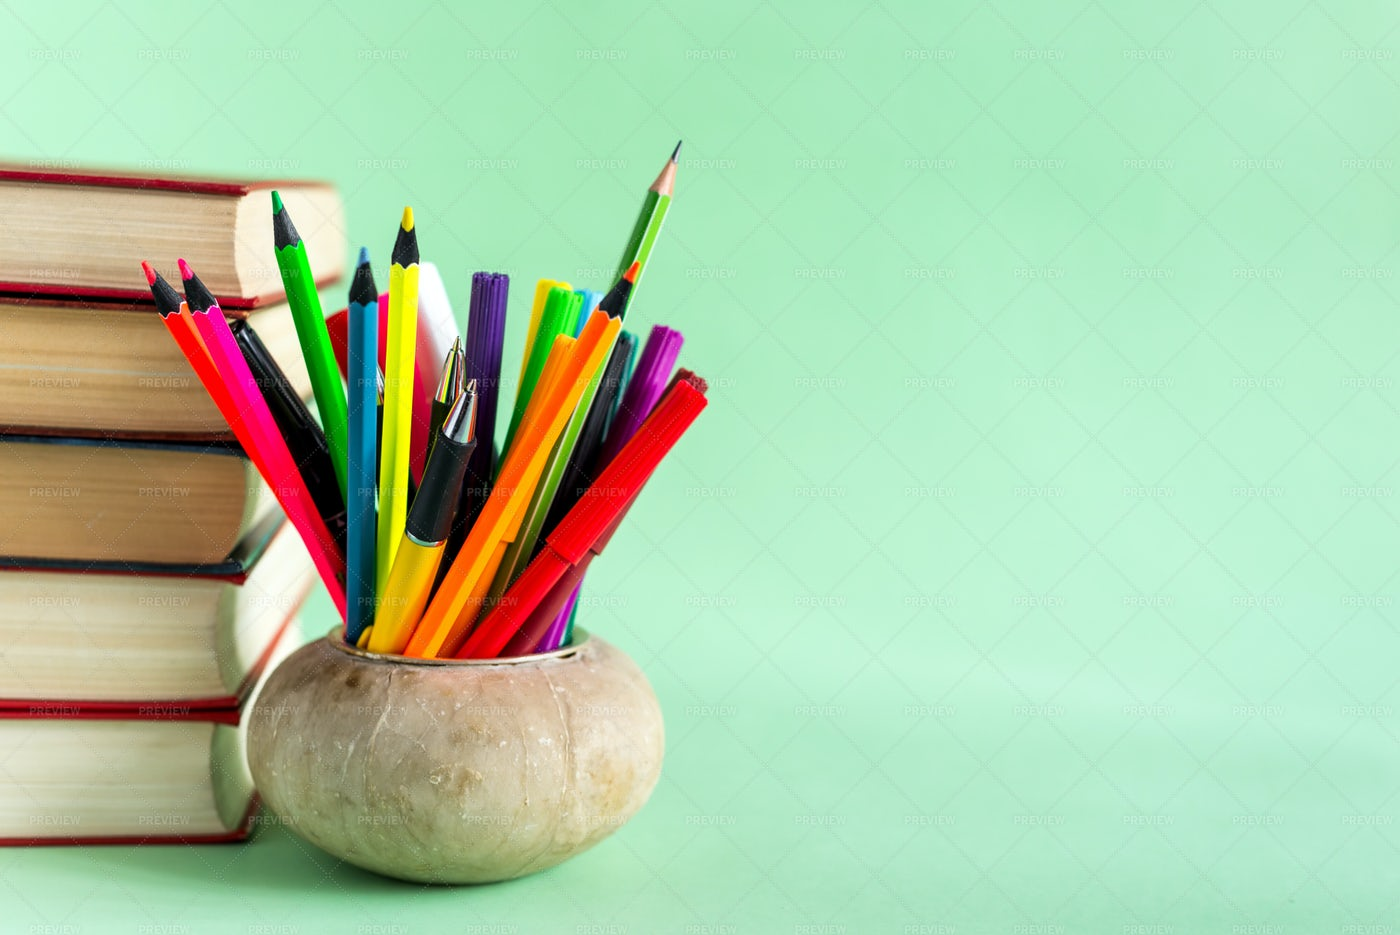 Colorful Books And Pencils: Stock Photos